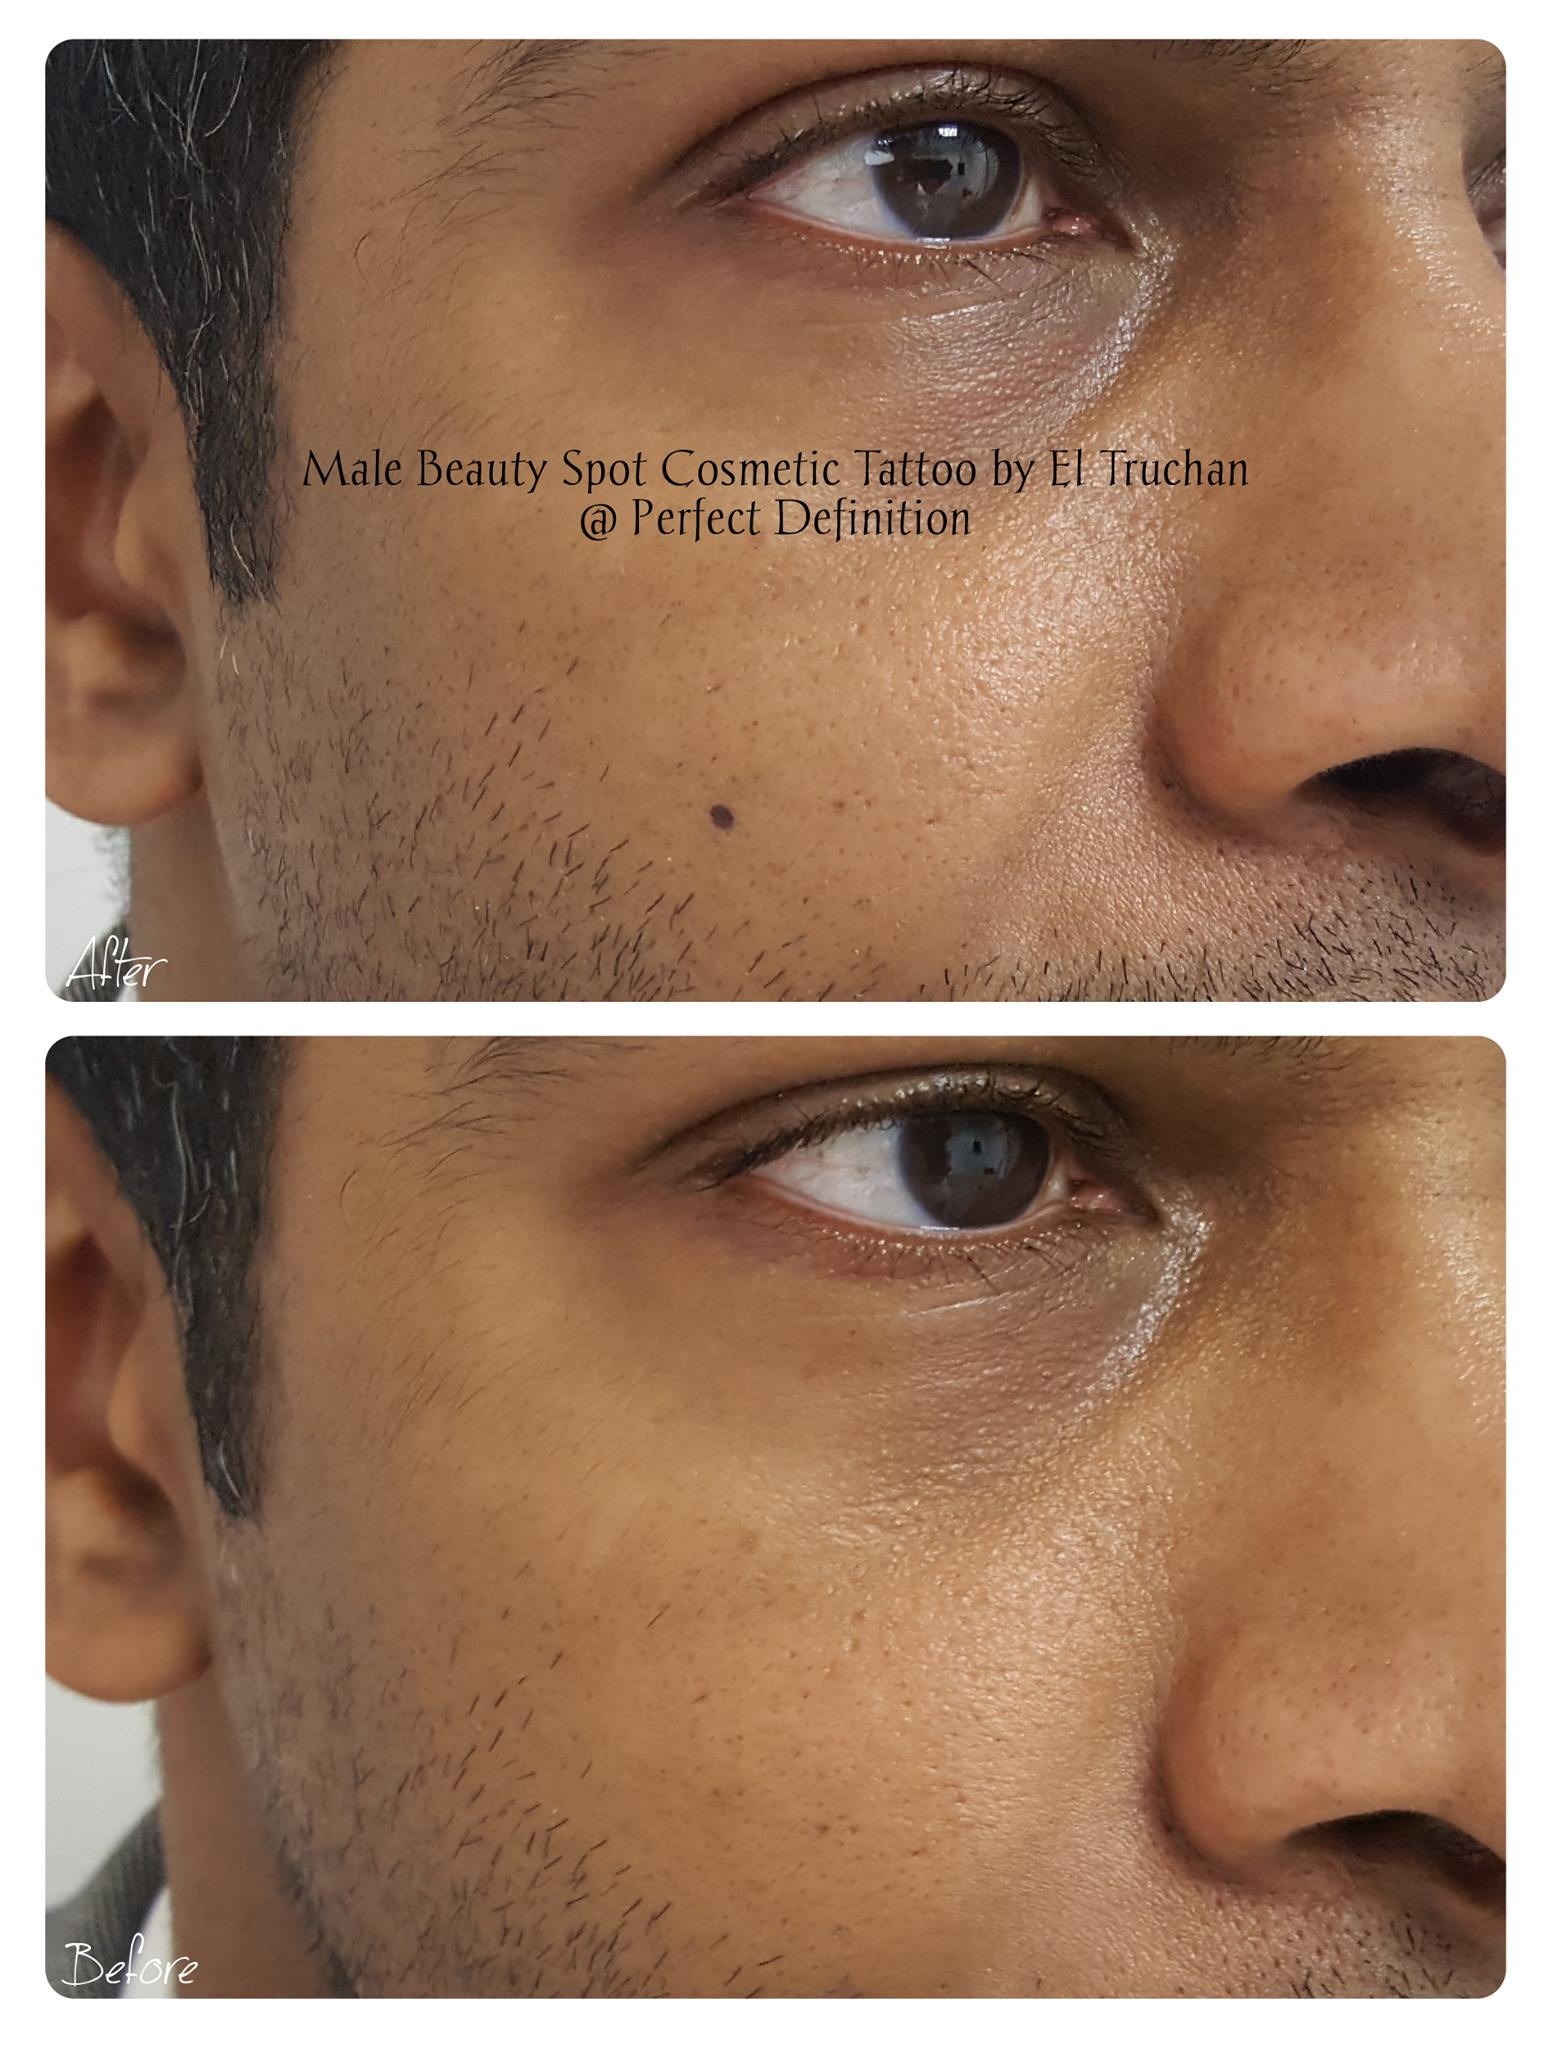 Male Beauty Spot Cosmetic Tattoo